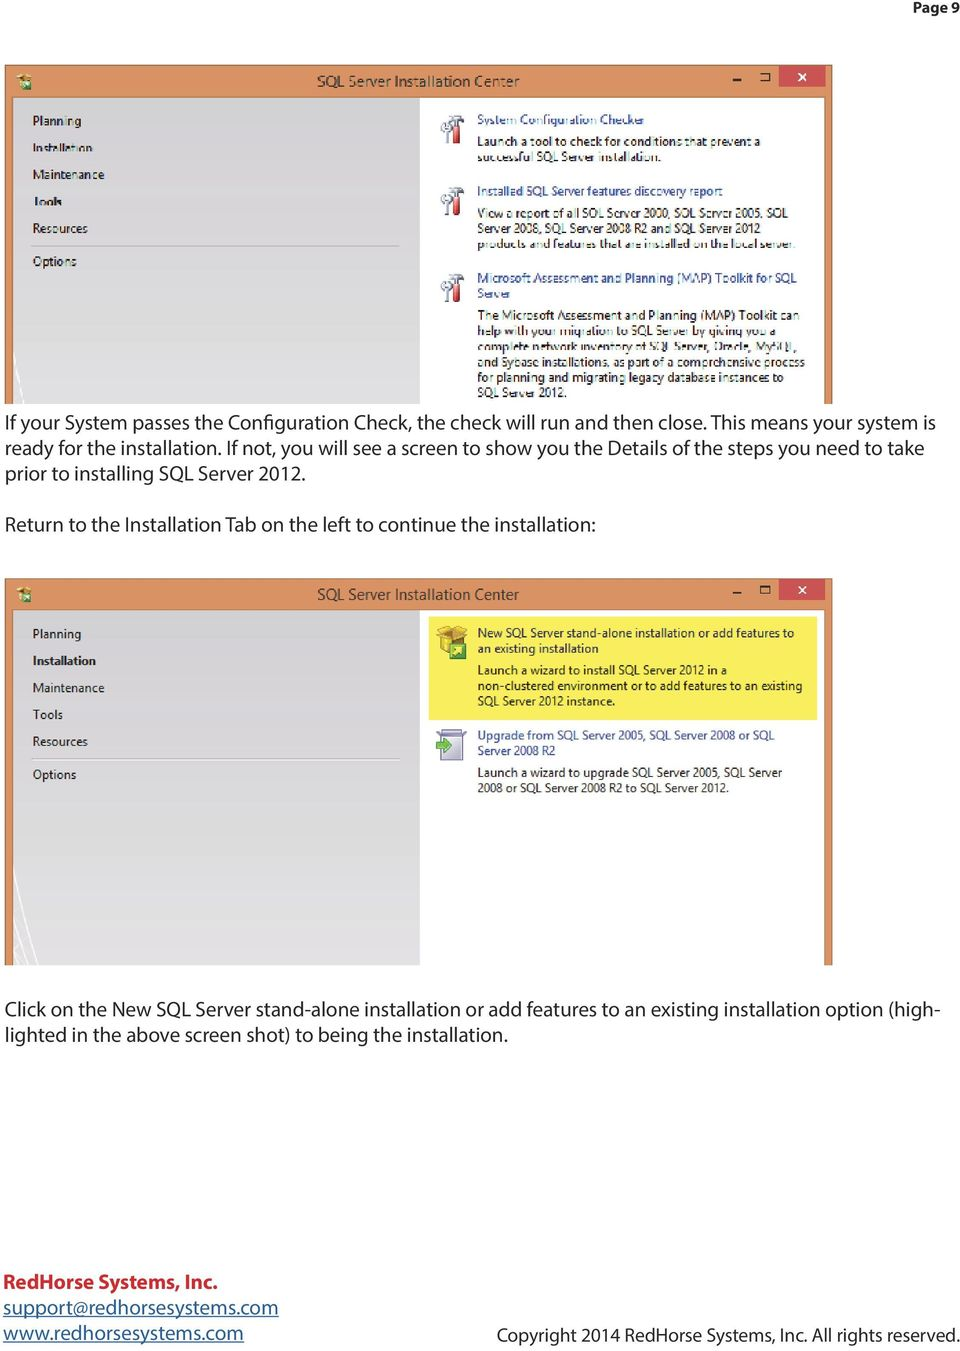 If not, you will see a screen to show you the Details of the steps you need to take prior to installing SQL Server 2012.